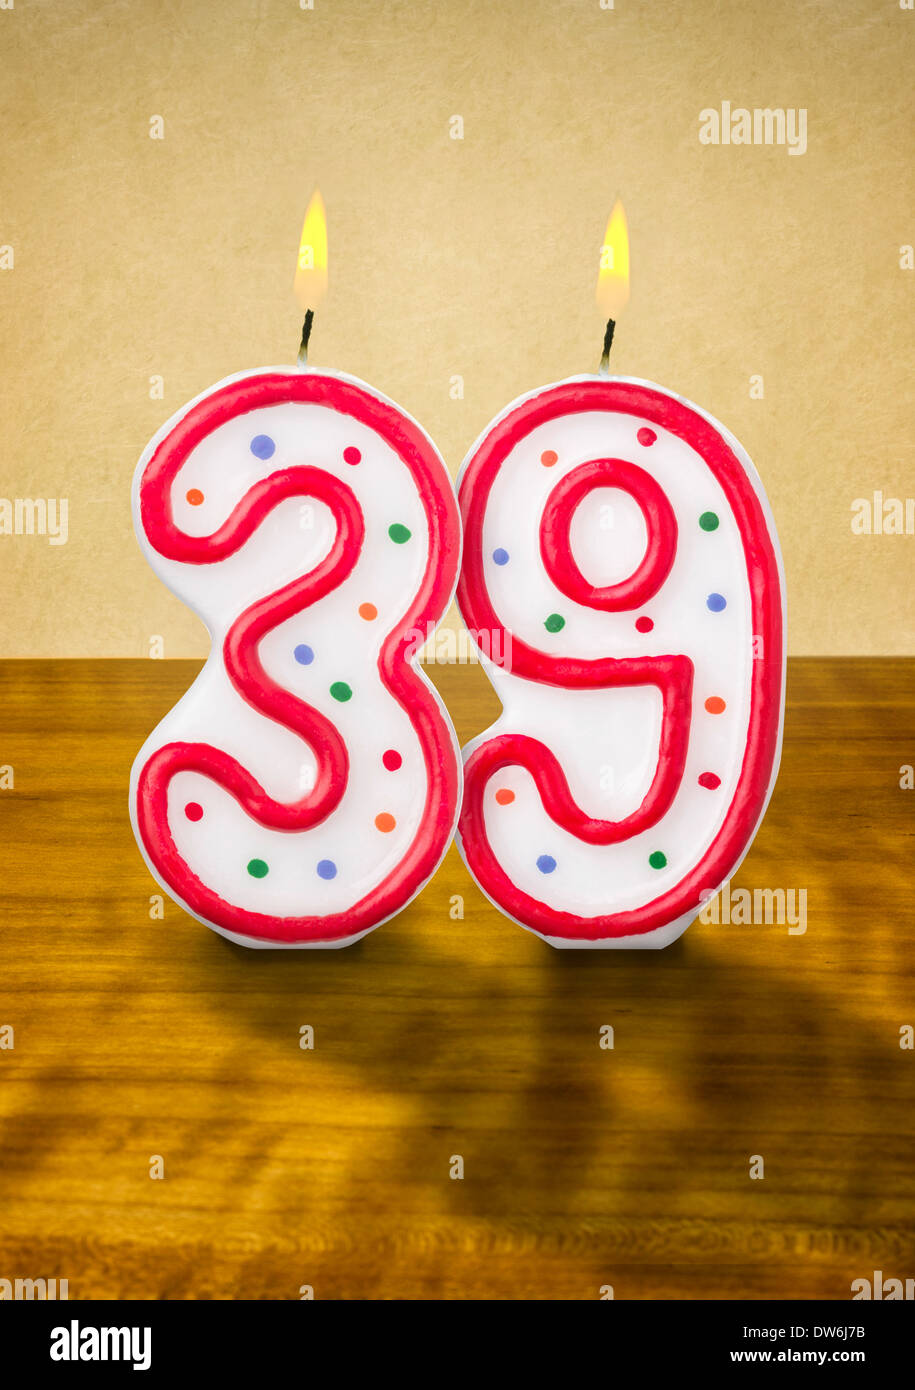 Happy 39th Birthday Stock Photos & Happy 39th Birthday